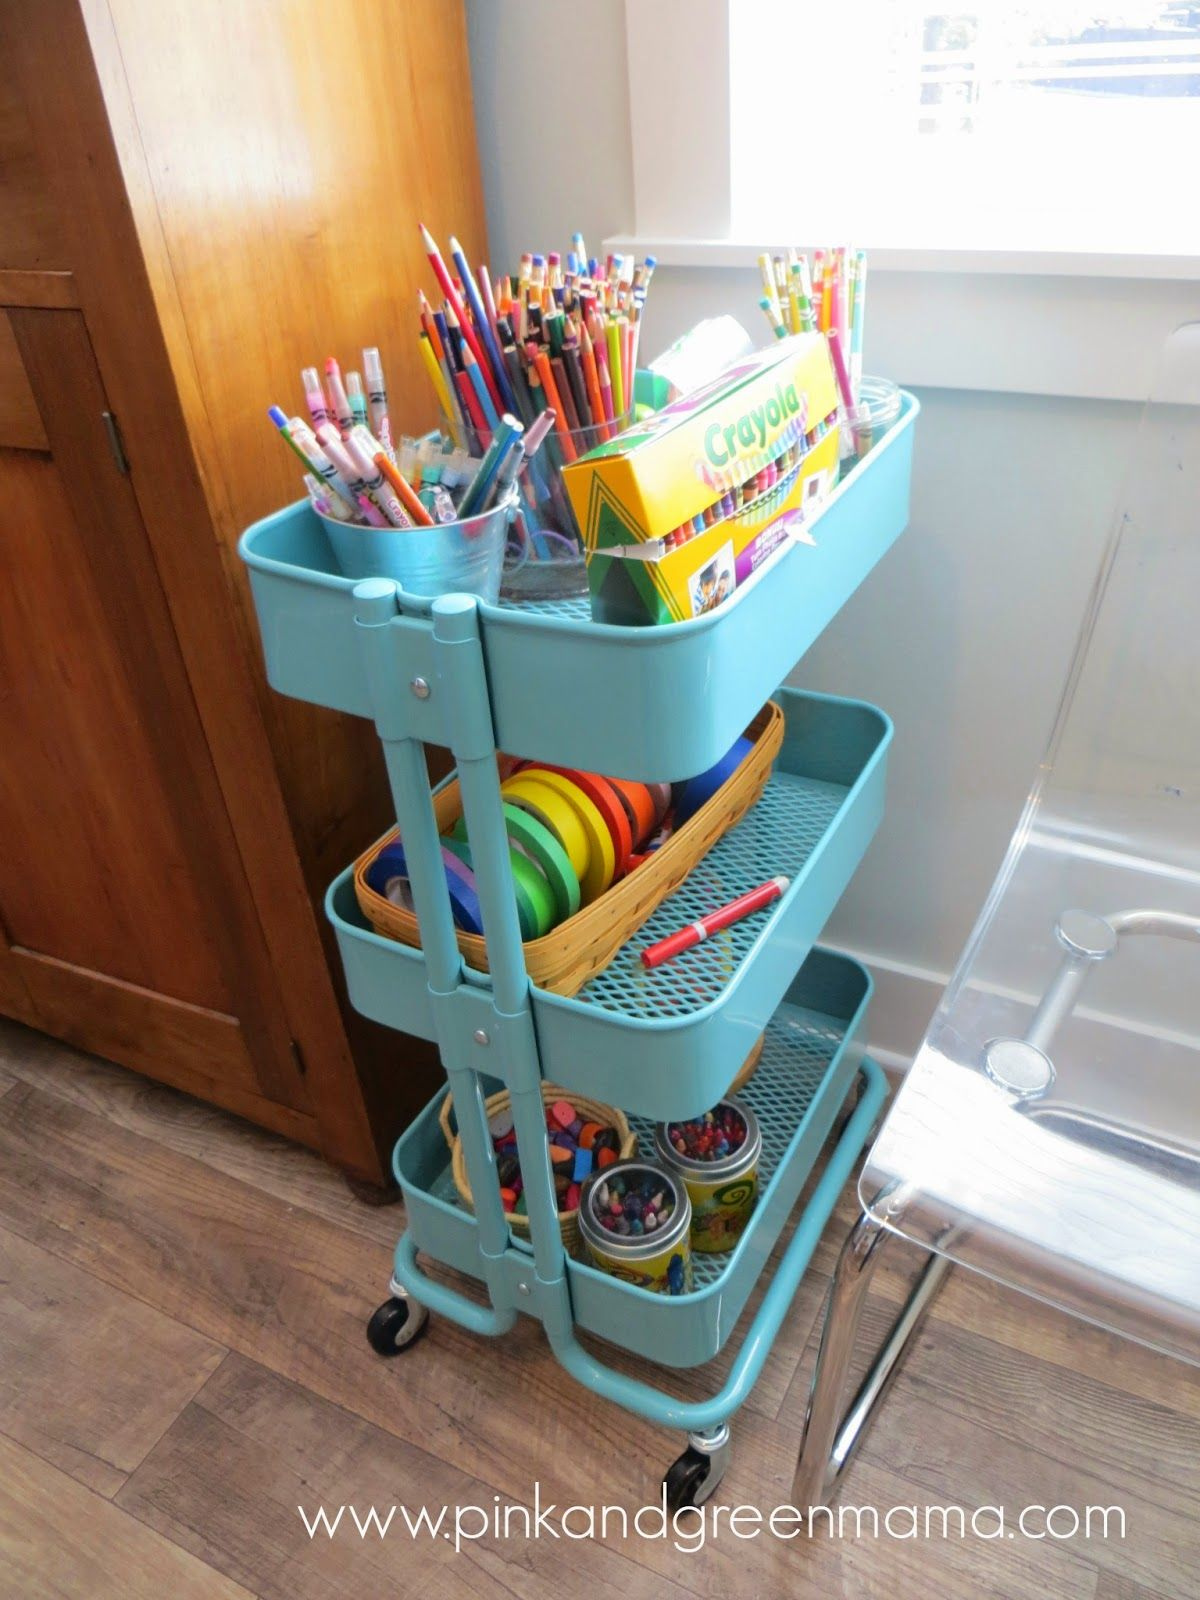 This ikea cart makes for the perfect art craft cart kids art this ikea cart makes for the perfect art craft cart kids art supply cart on sciox Images